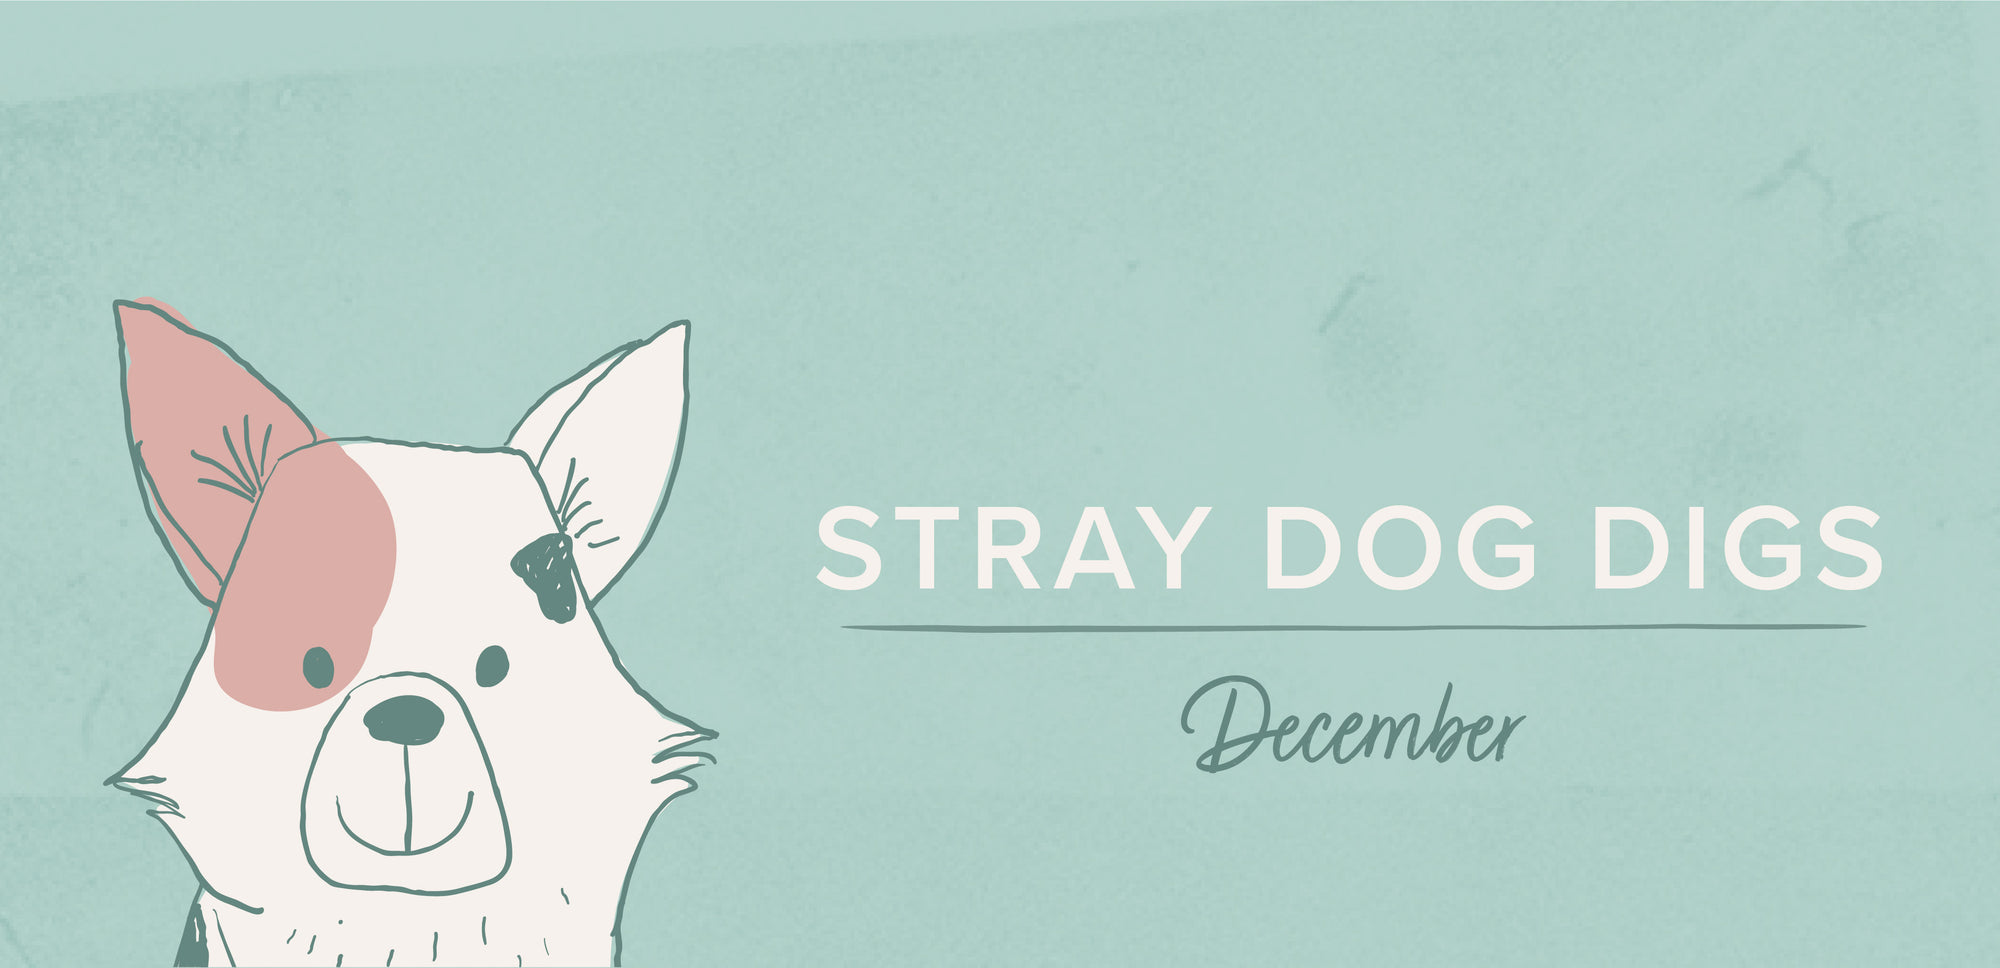 Stray Dog Digs: December